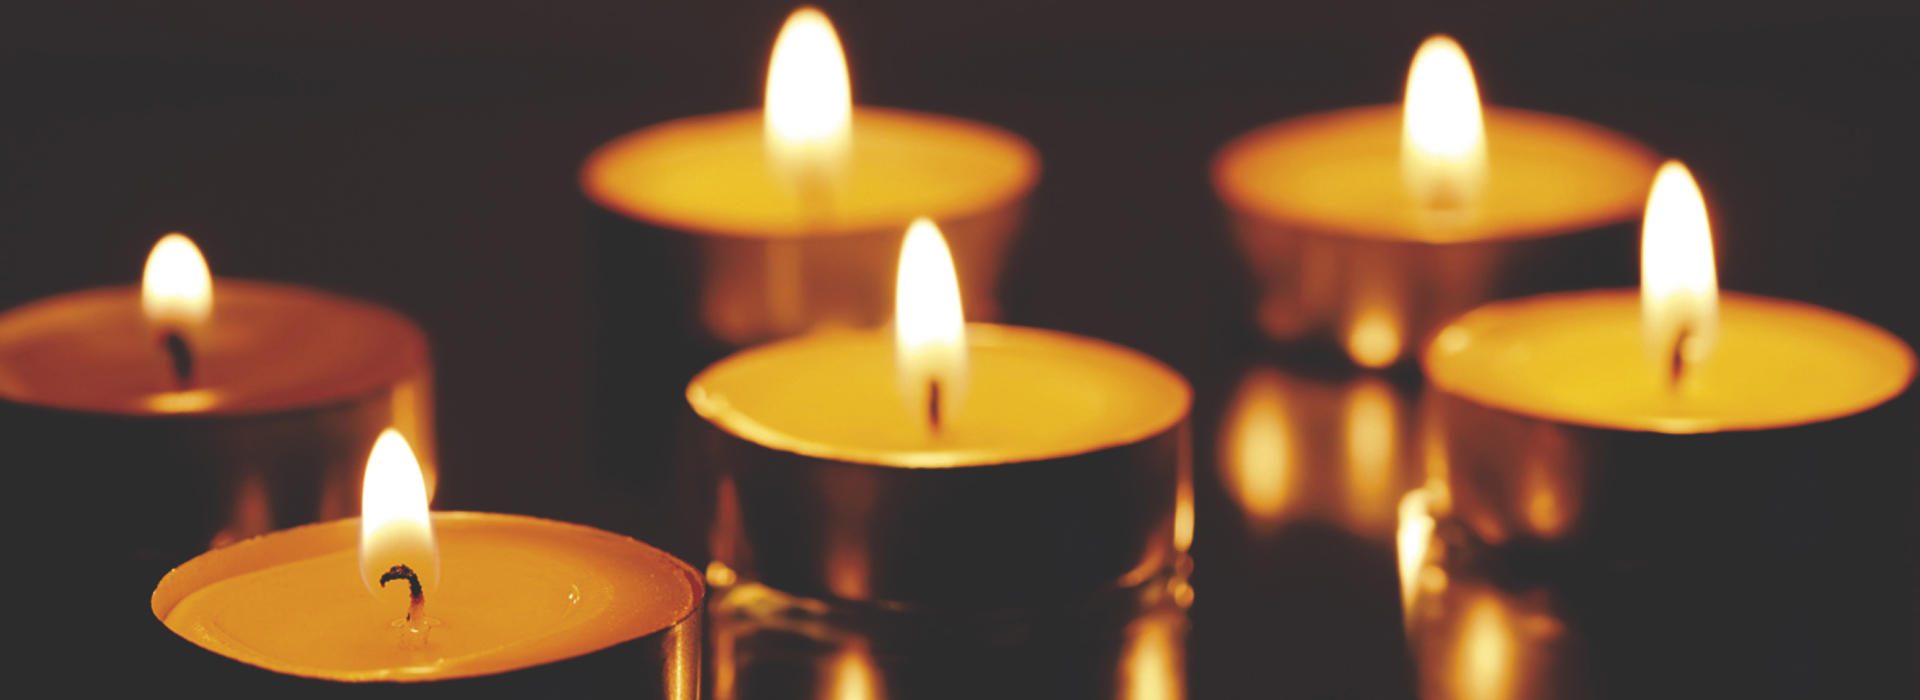 candles_RGB_72dpi_web-1